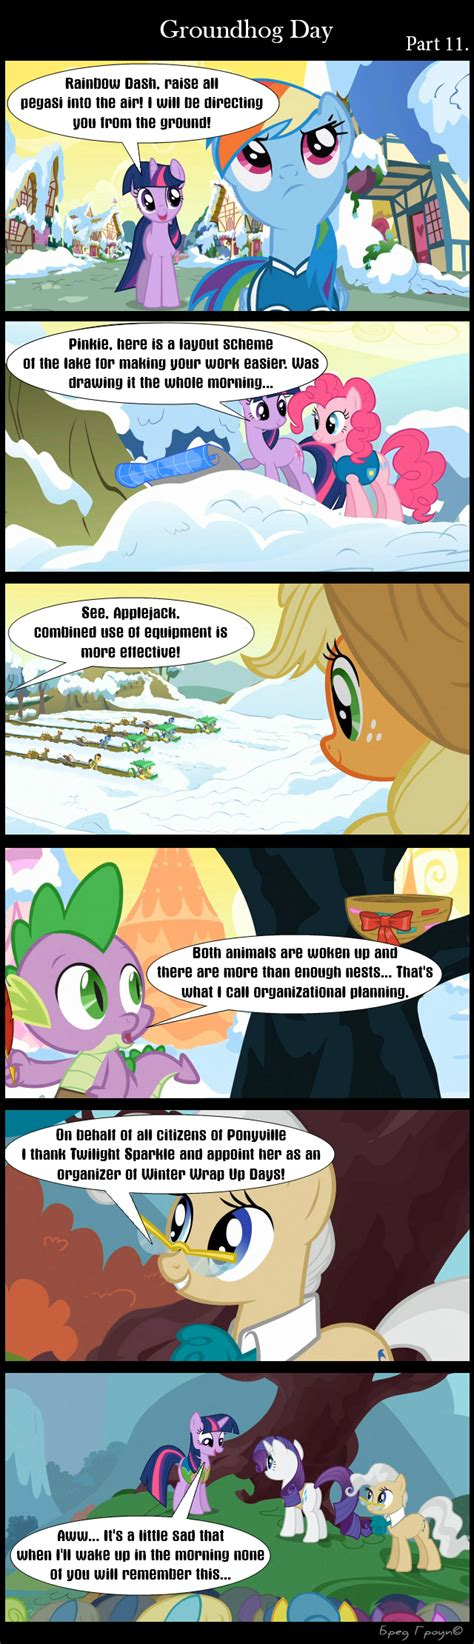 groundhog day fanfiction 1355774 applejack artist bredgroup comic comic